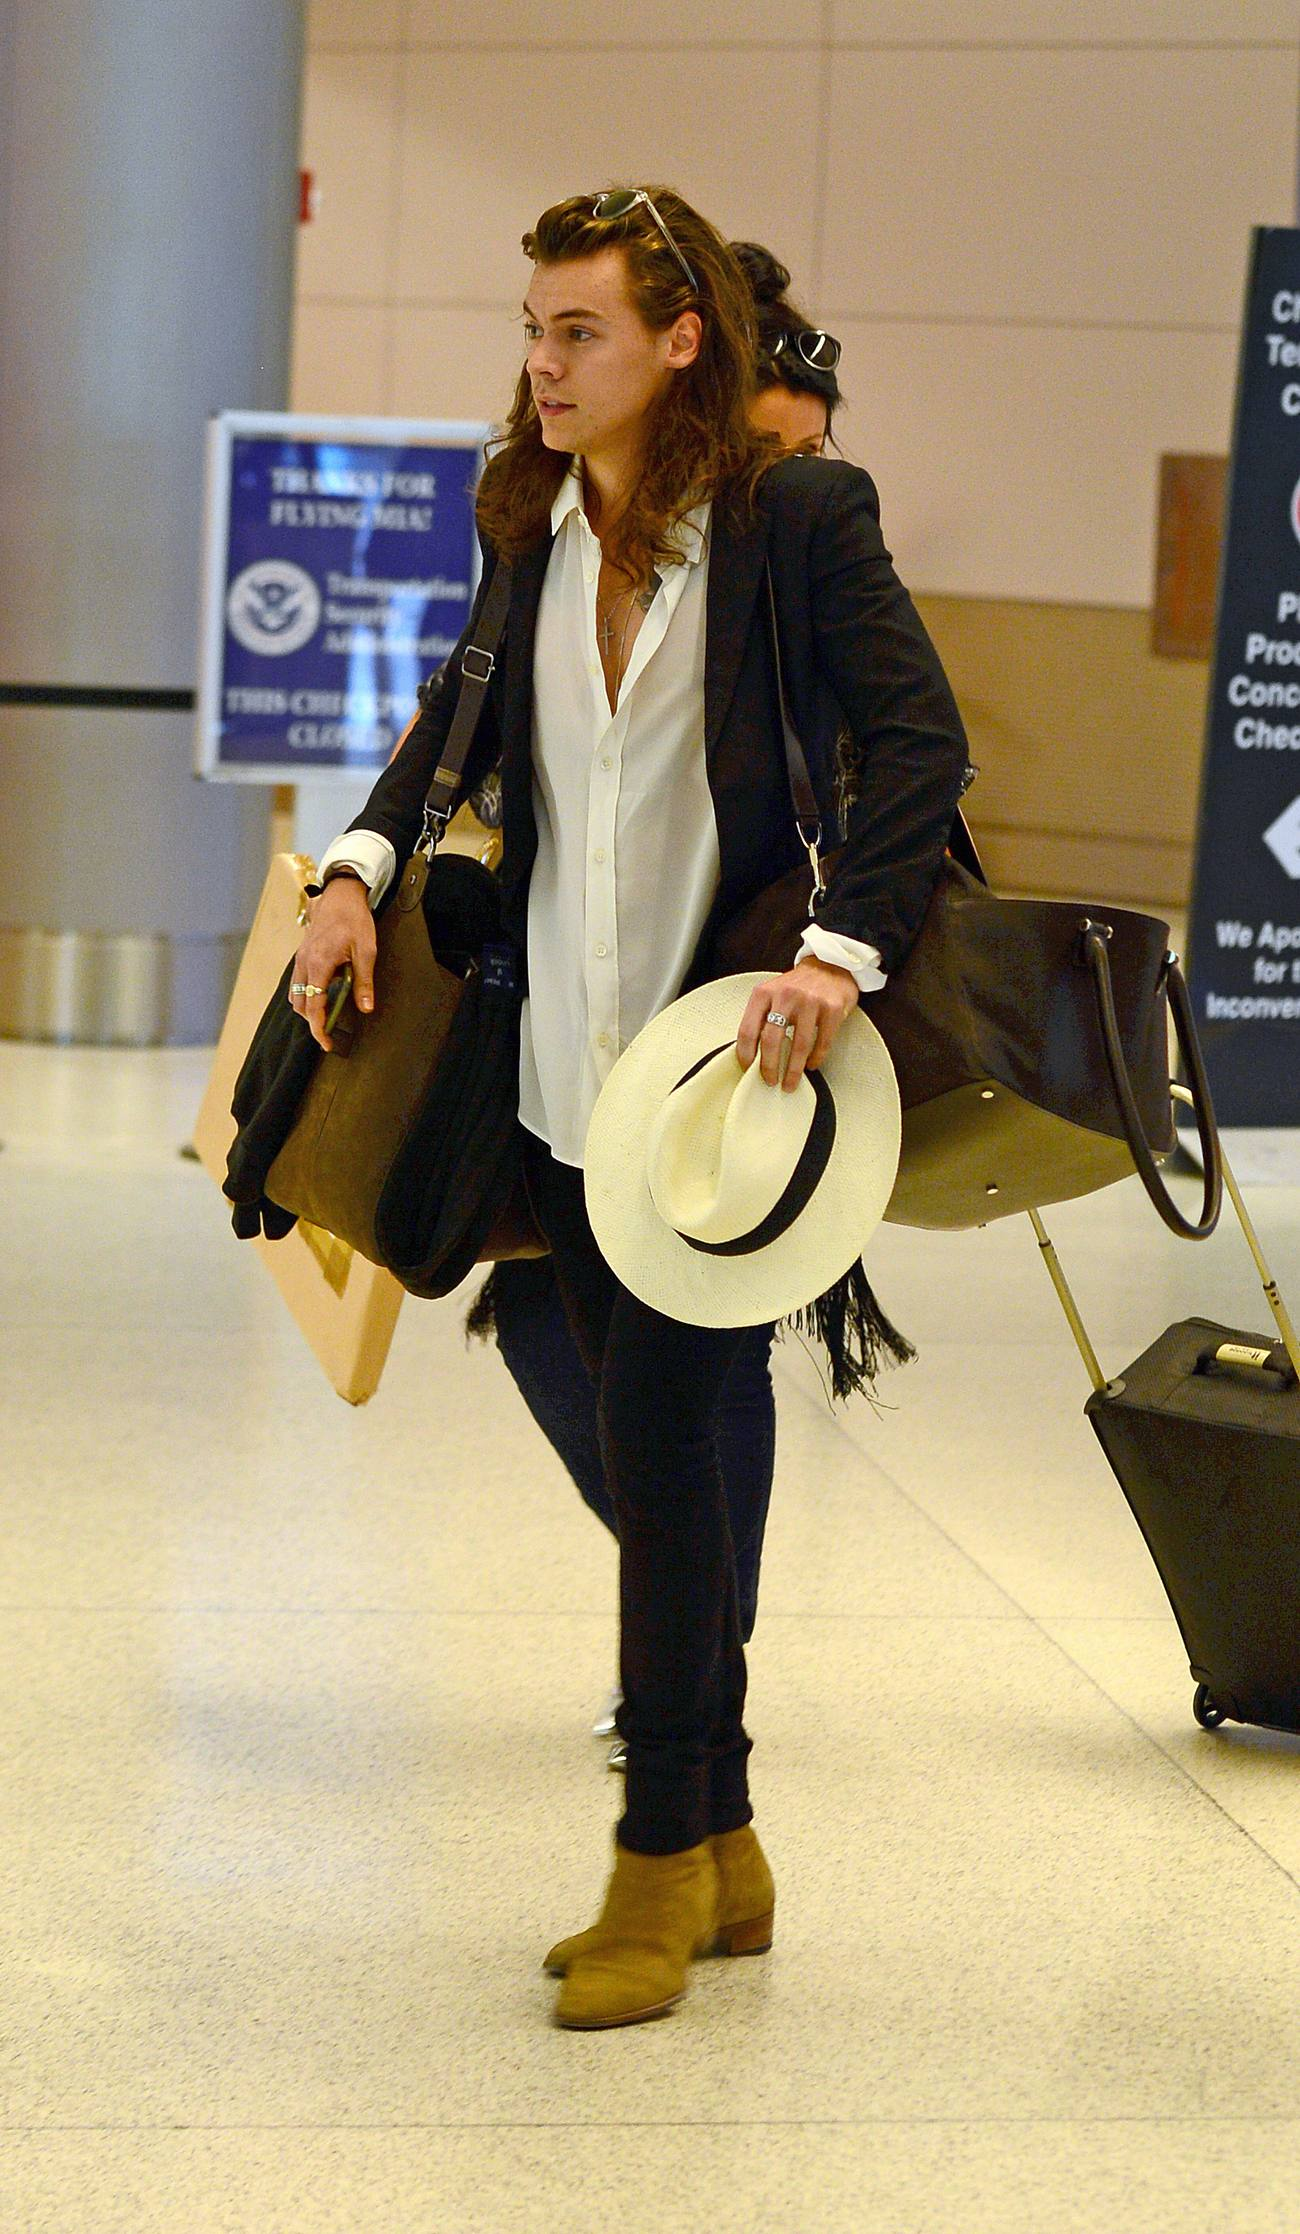 Harry Styles Arrives At Miami Airport Celeb Donut